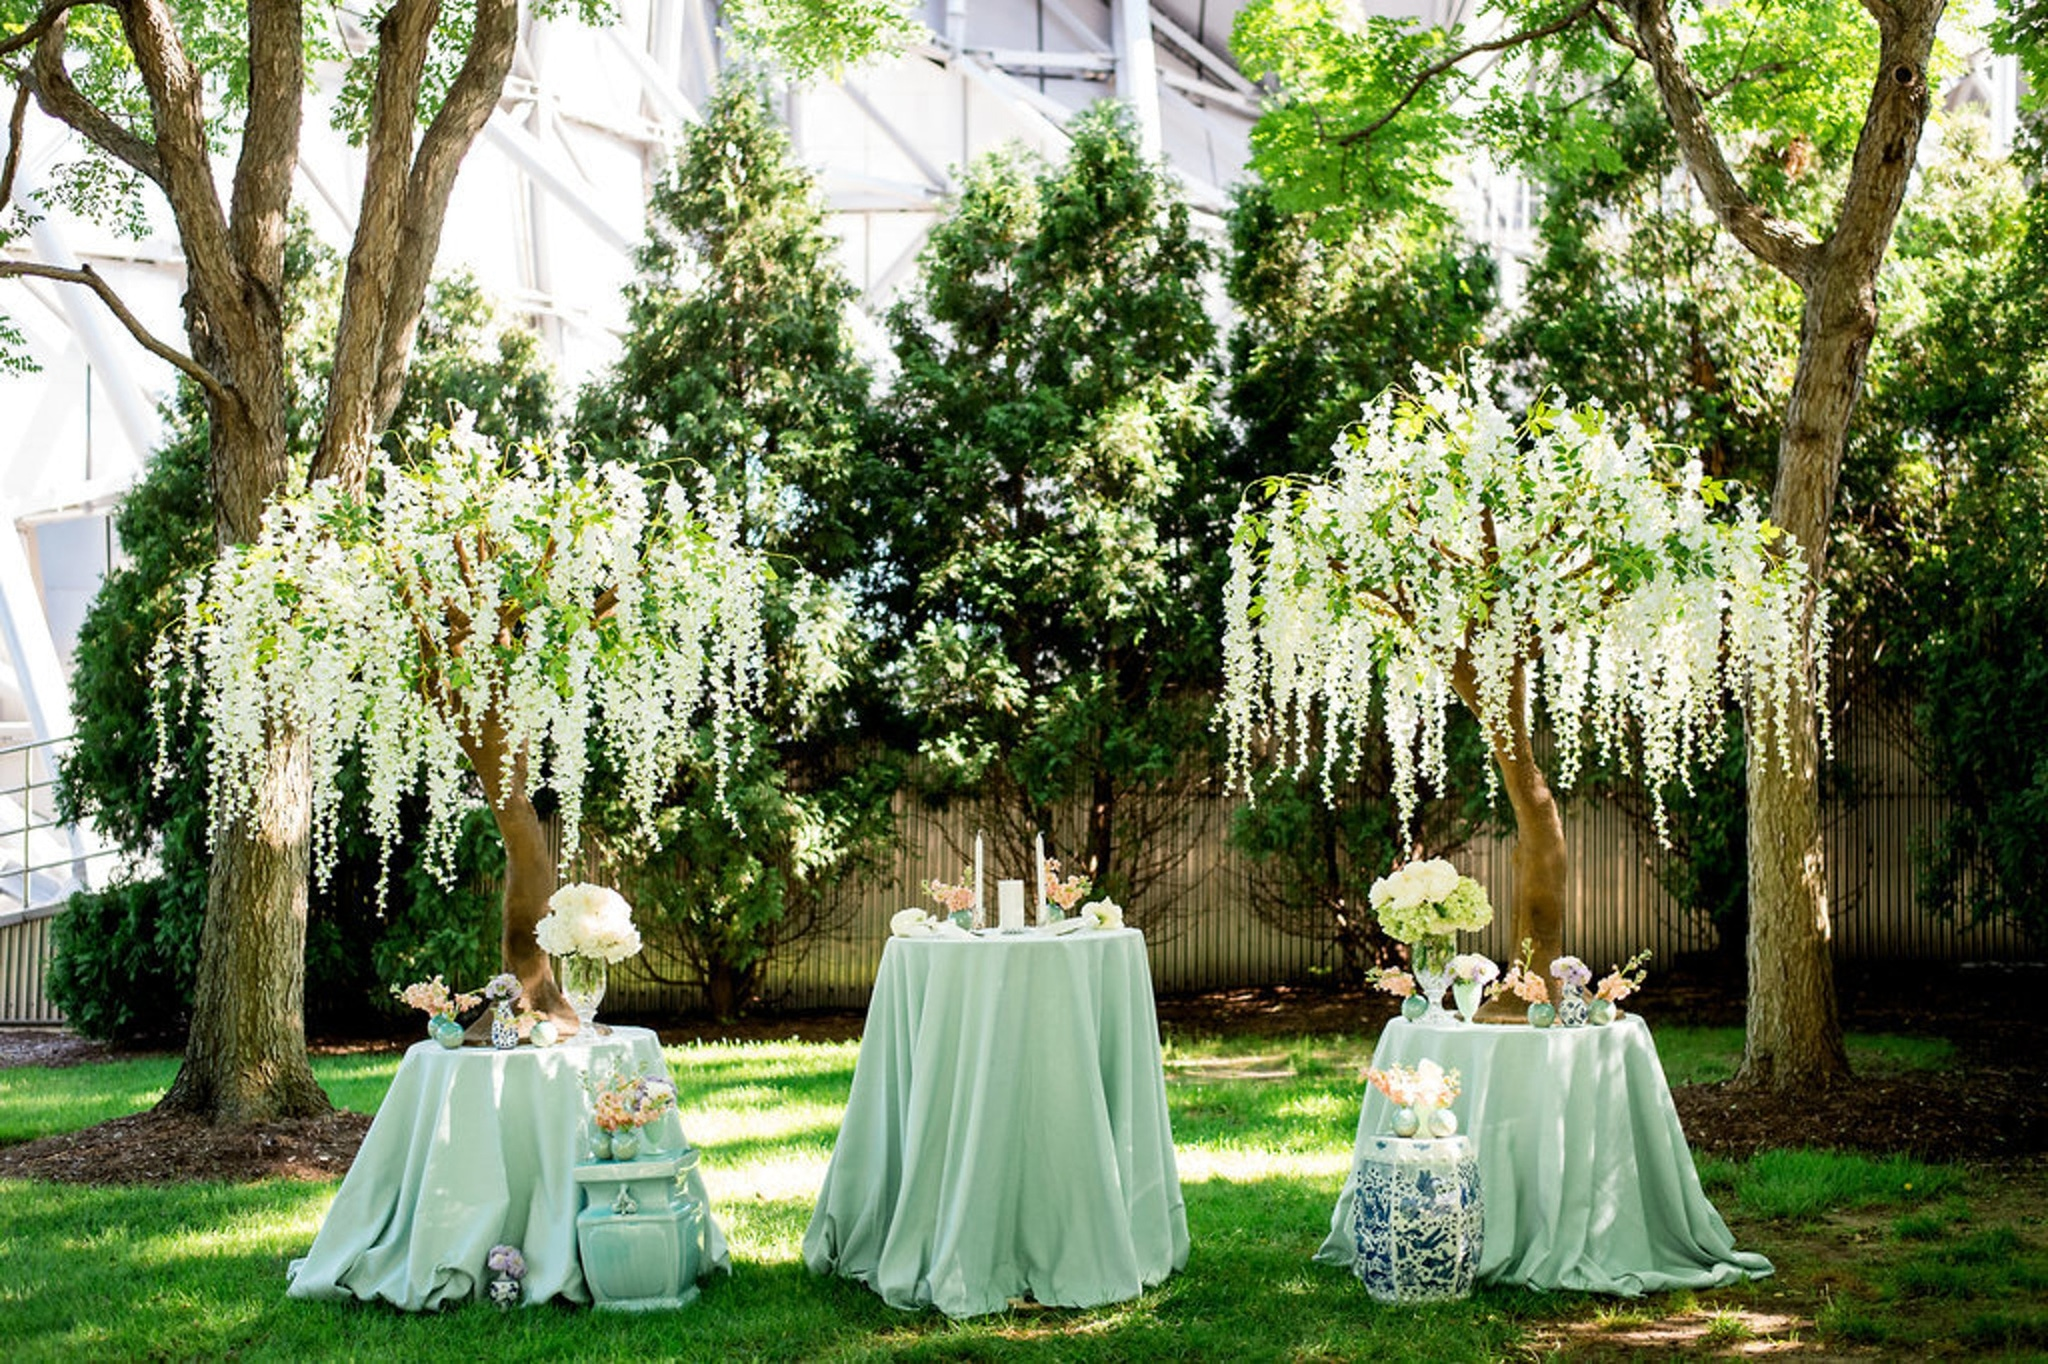 Indoor tree decor and green linens